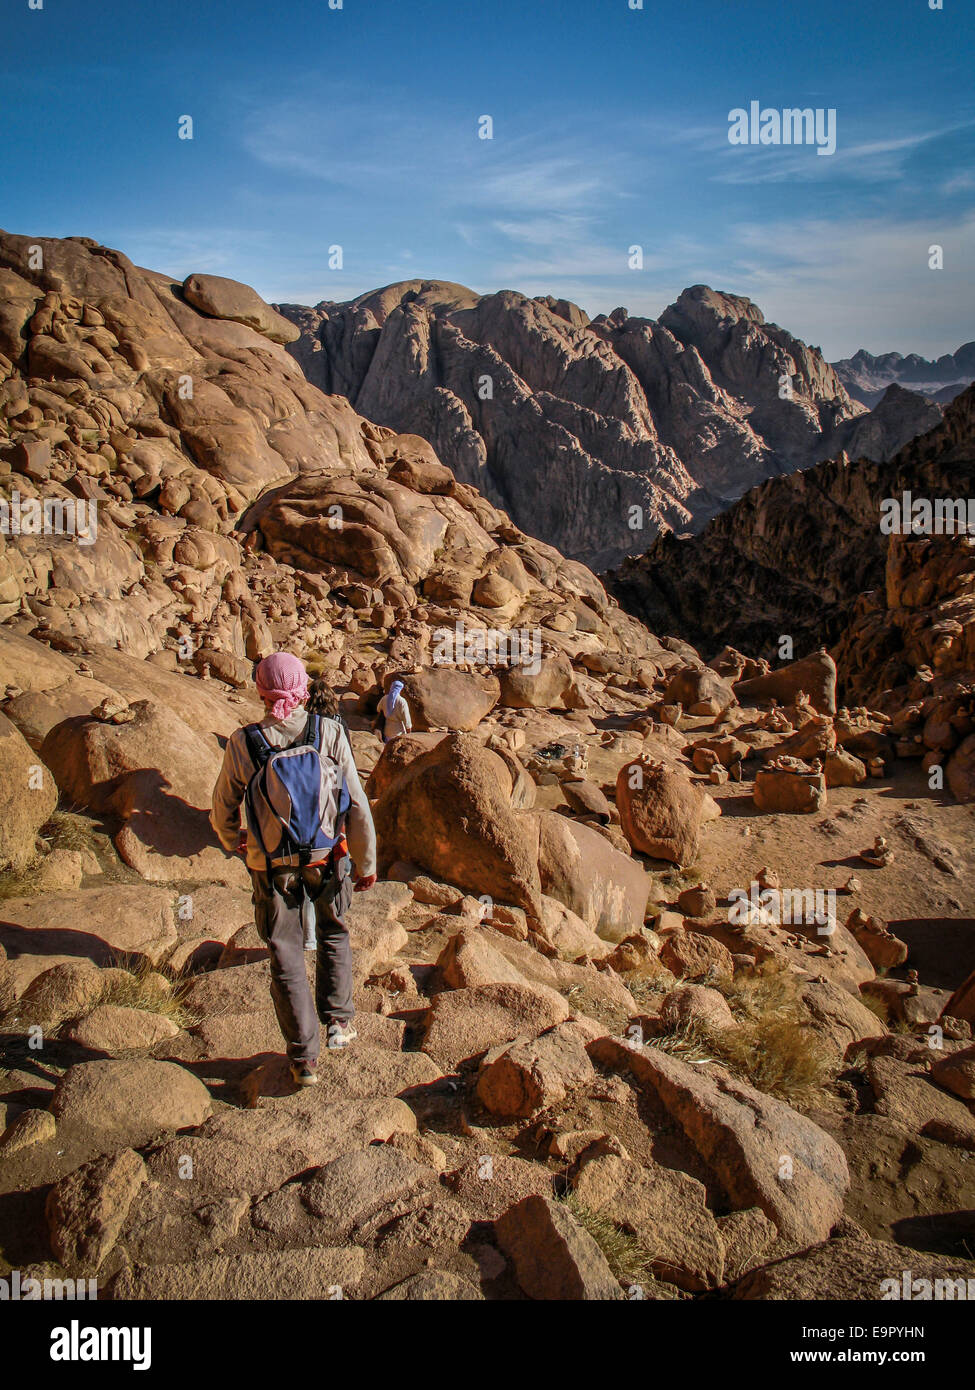 Pilgrims hiking down from the top of Mount Sinai, sacred to Muslims, Christians and Jews, in Egypt's Sinai Peninsula. - Stock Image